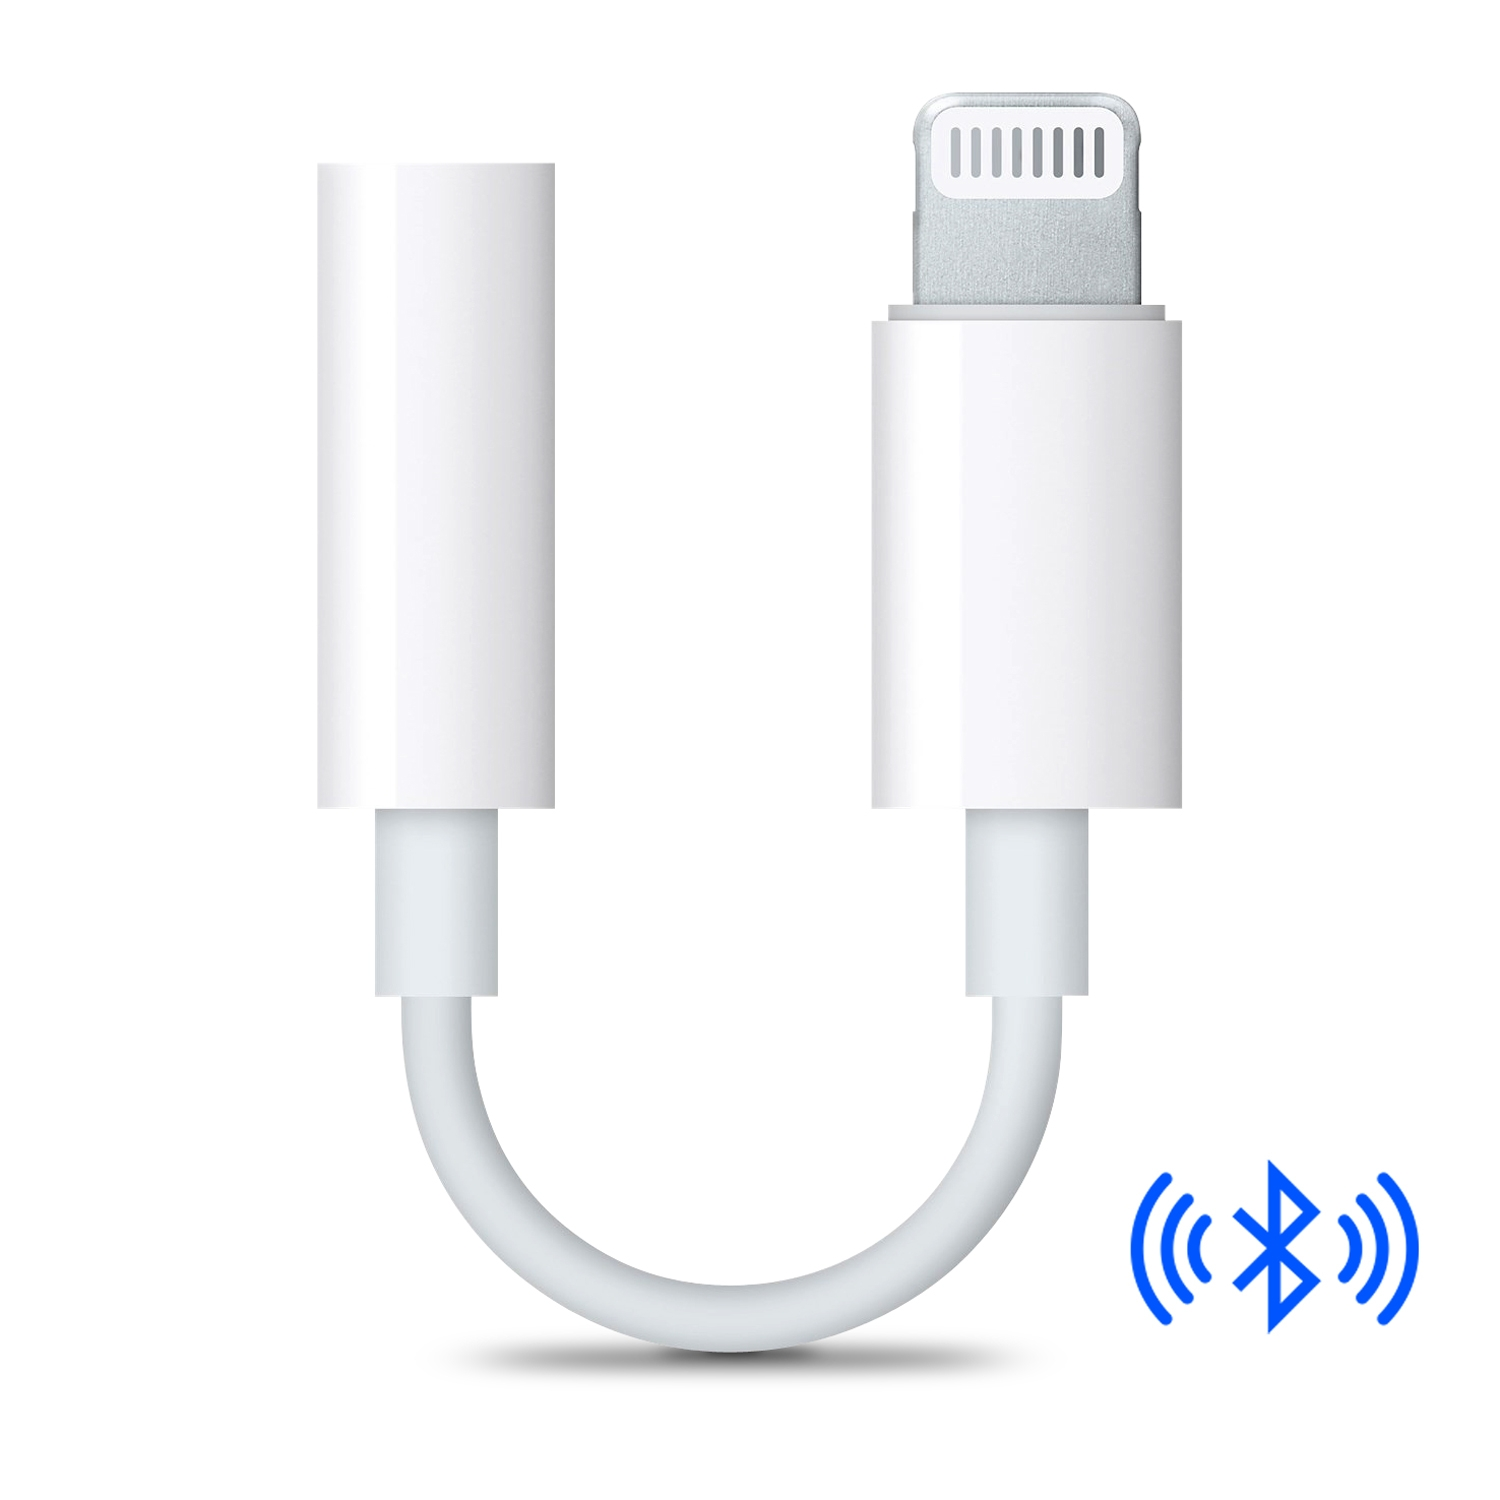 """Bluetooth Headphone Jack Adapter to 3.5mm Audio Jack Earphone Extension Cord for iPhone X/ iPhone 8/8 Plus iPhone 7/7 Plus - """"Make sure pair with your iPhone to receive calls"""""""